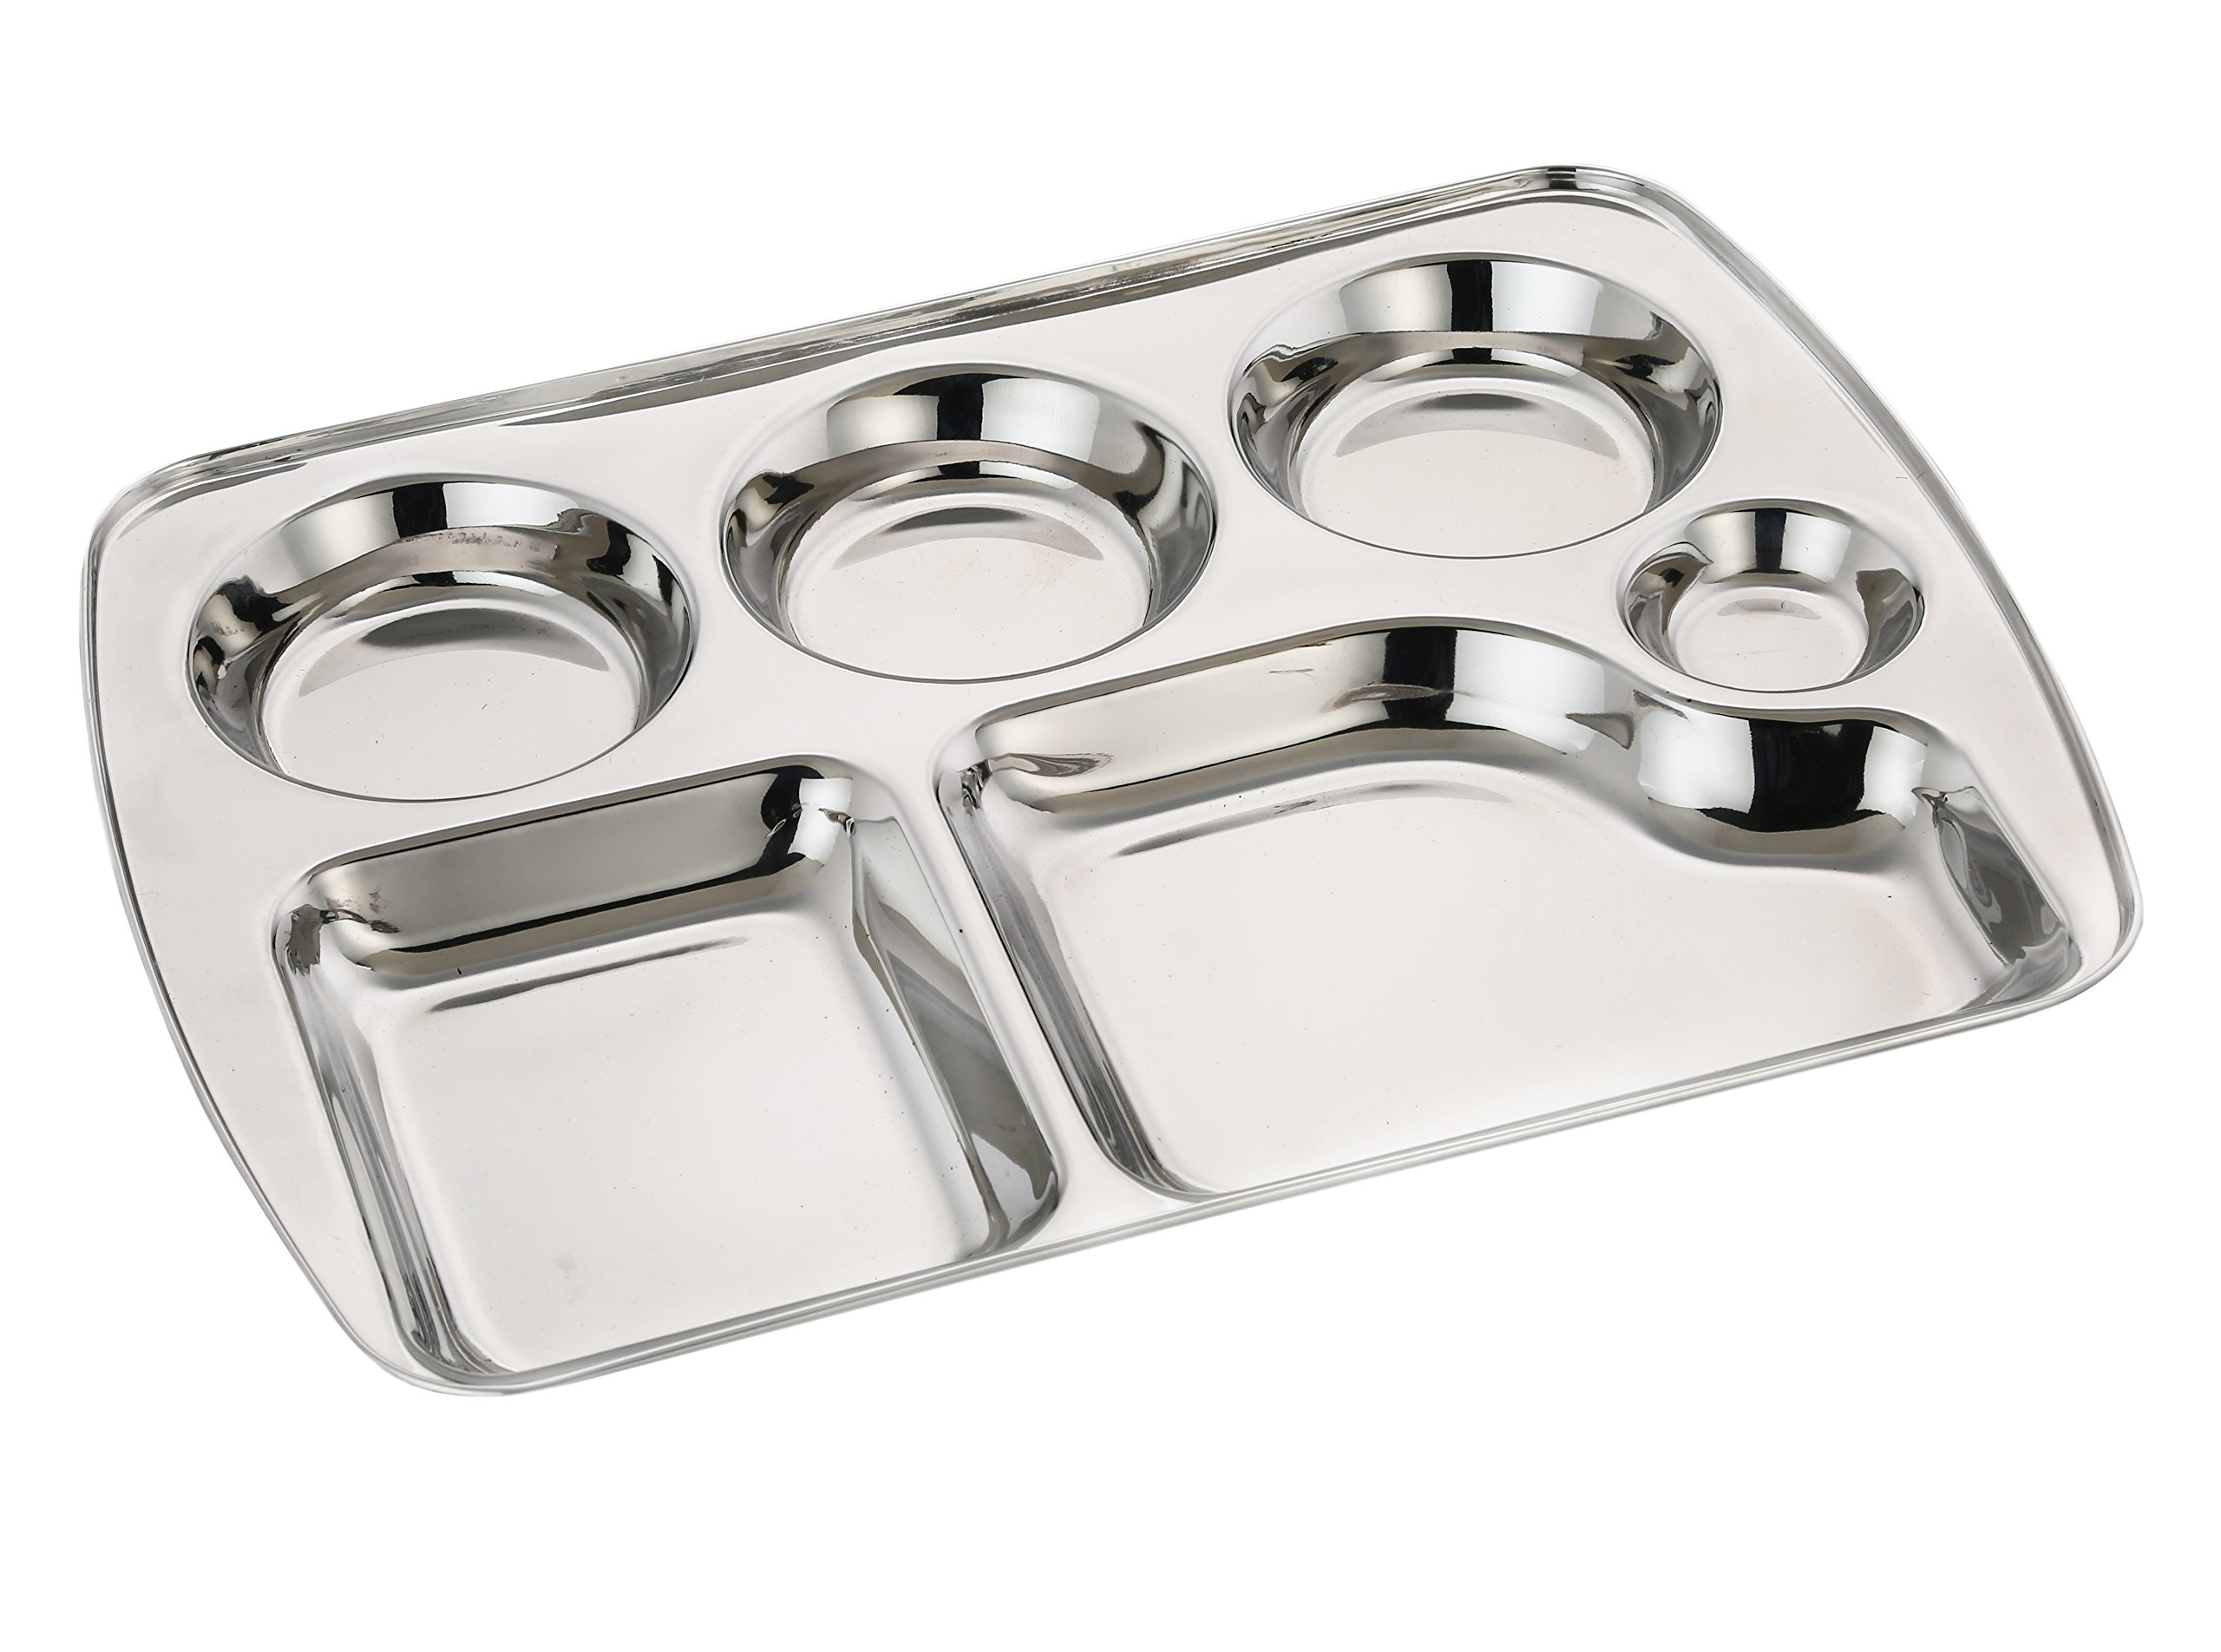 Expresso Indian BPA Free Stainless Steel Rectangle Dinner Plate w/ 6 Sections Divided Mess Trays for Kids, Toddler Lunch, Camping, Events & Every Day Use Kitchenware